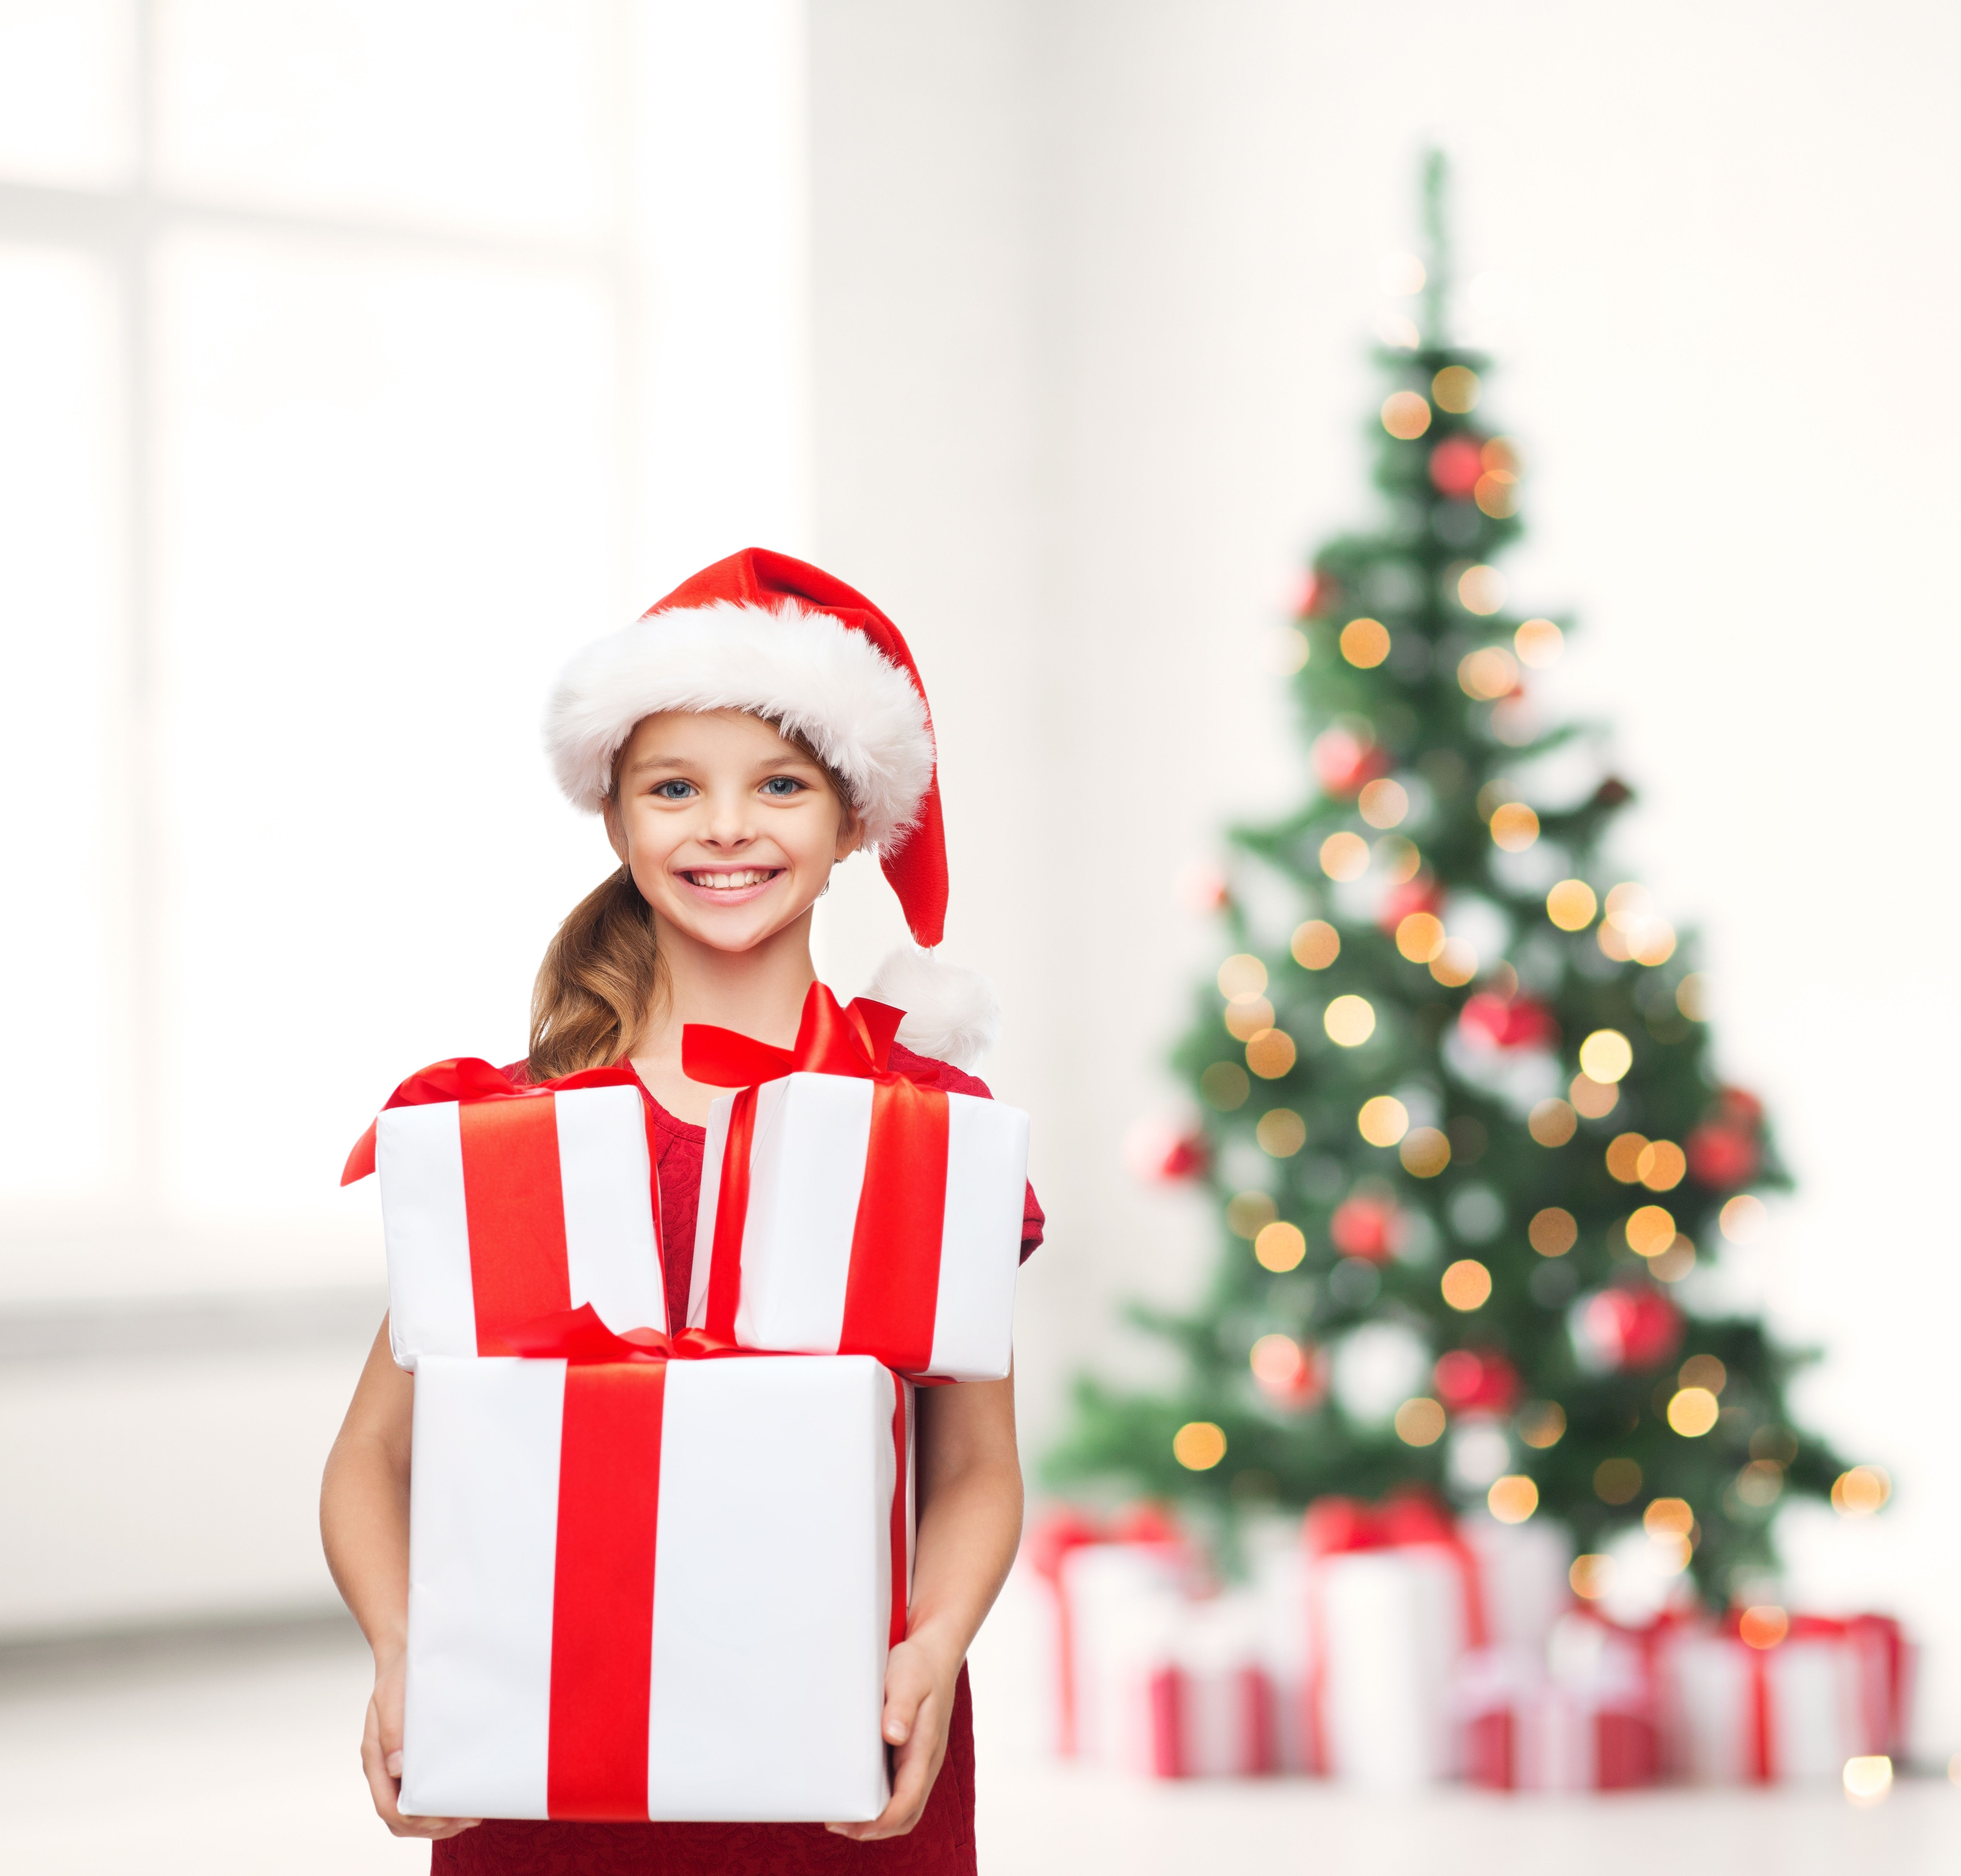 happy, holidays, merry, Christmas, new, year 01, wallpapers , Pc backgrounds, free photos - HD wallpaper desktop backgrounds